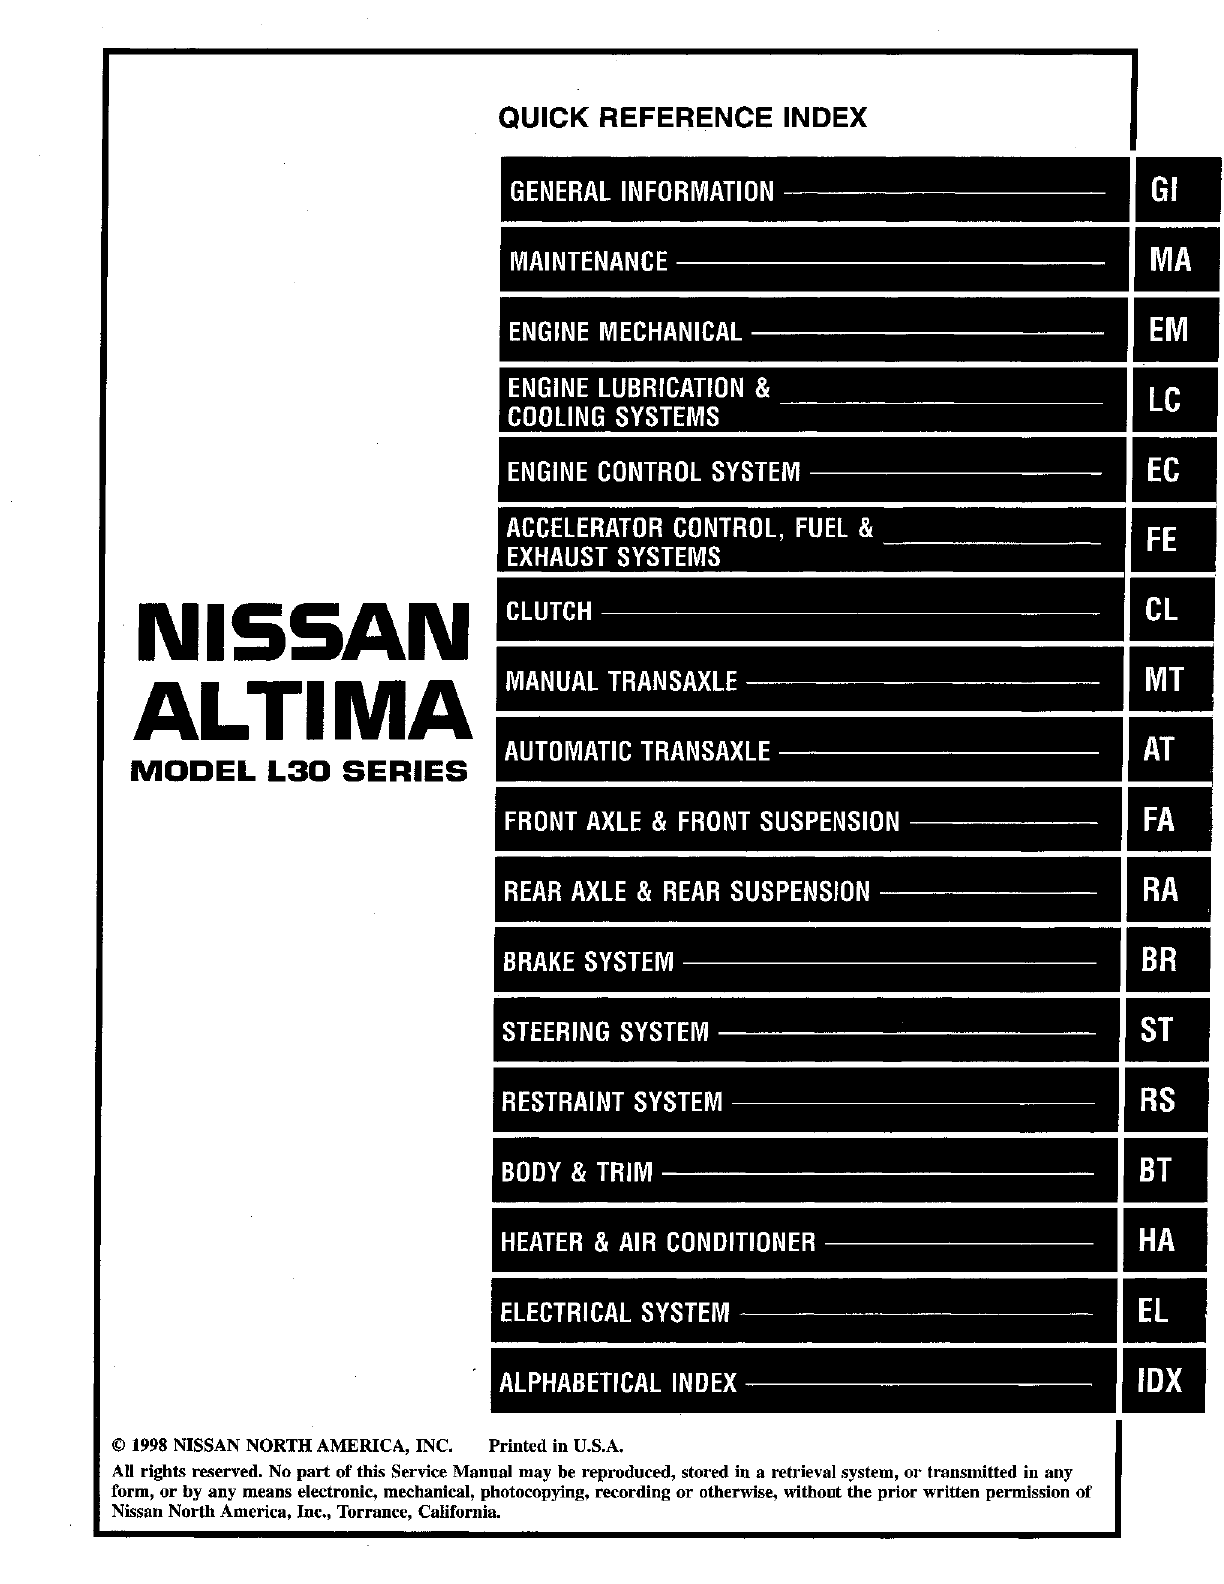 See our other Nissan Altima Manuals: Nissan Altima 1997 Owners Manual